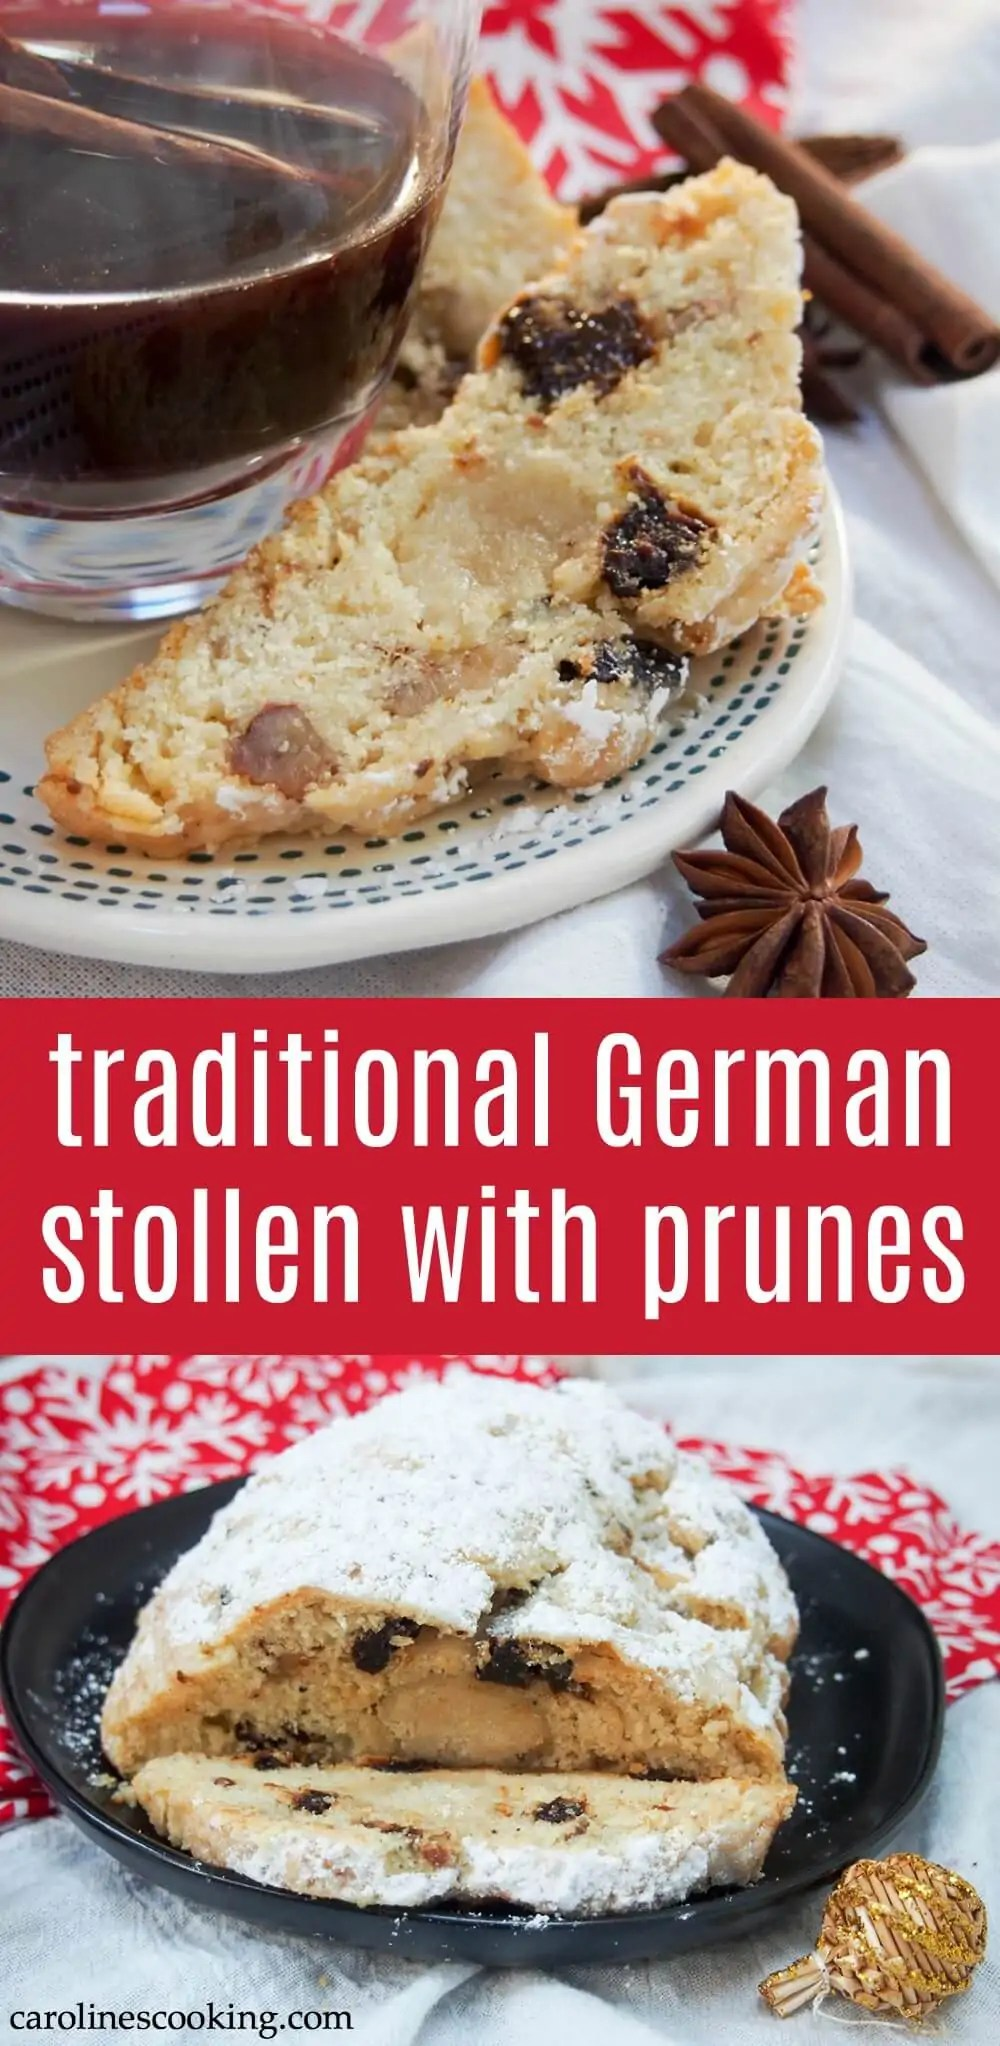 Stollen is Germany's Christmas cake and this version is made with prunes, lemon zest & cardamon. It's wonderfully aromatic, moist & delicious - the perfect seasonal treat. Bonus, it's easy to make.#stollen #german #christmas #baking